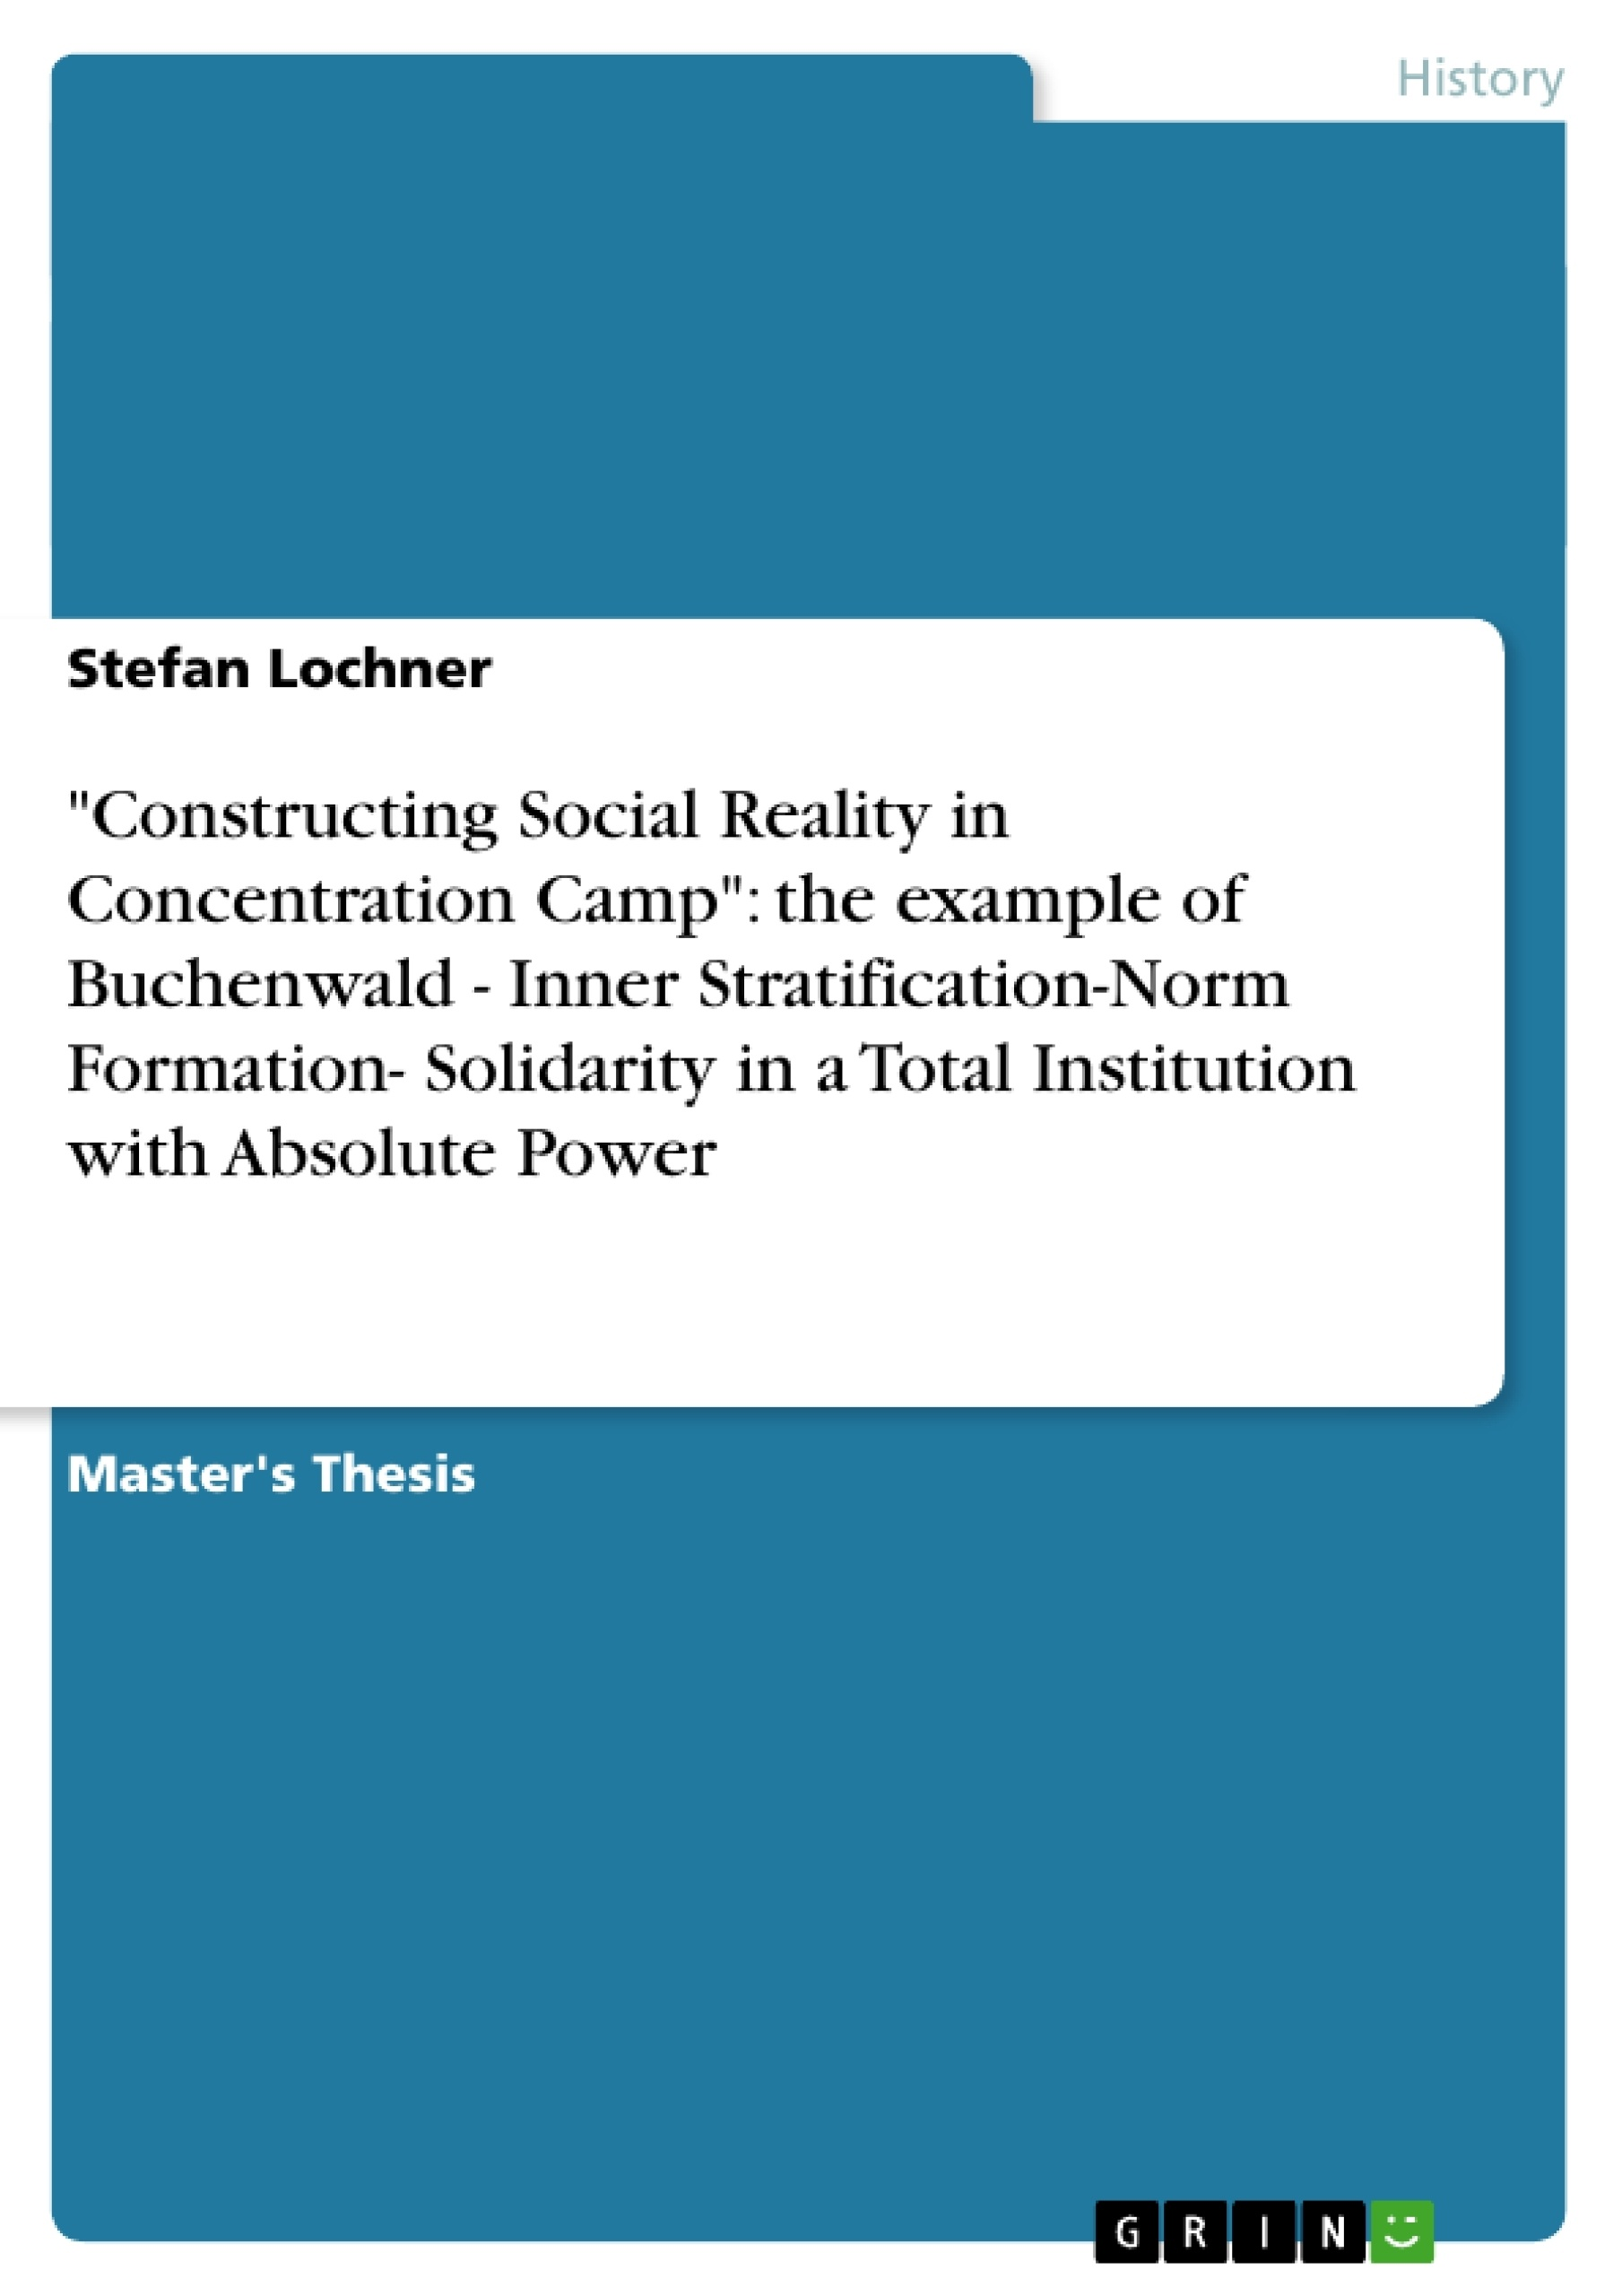 """Title: """"Constructing Social Reality in Concentration Camp"""": the example of Buchenwald - Inner Stratification-Norm Formation- Solidarity in a Total Institution with Absolute Power"""